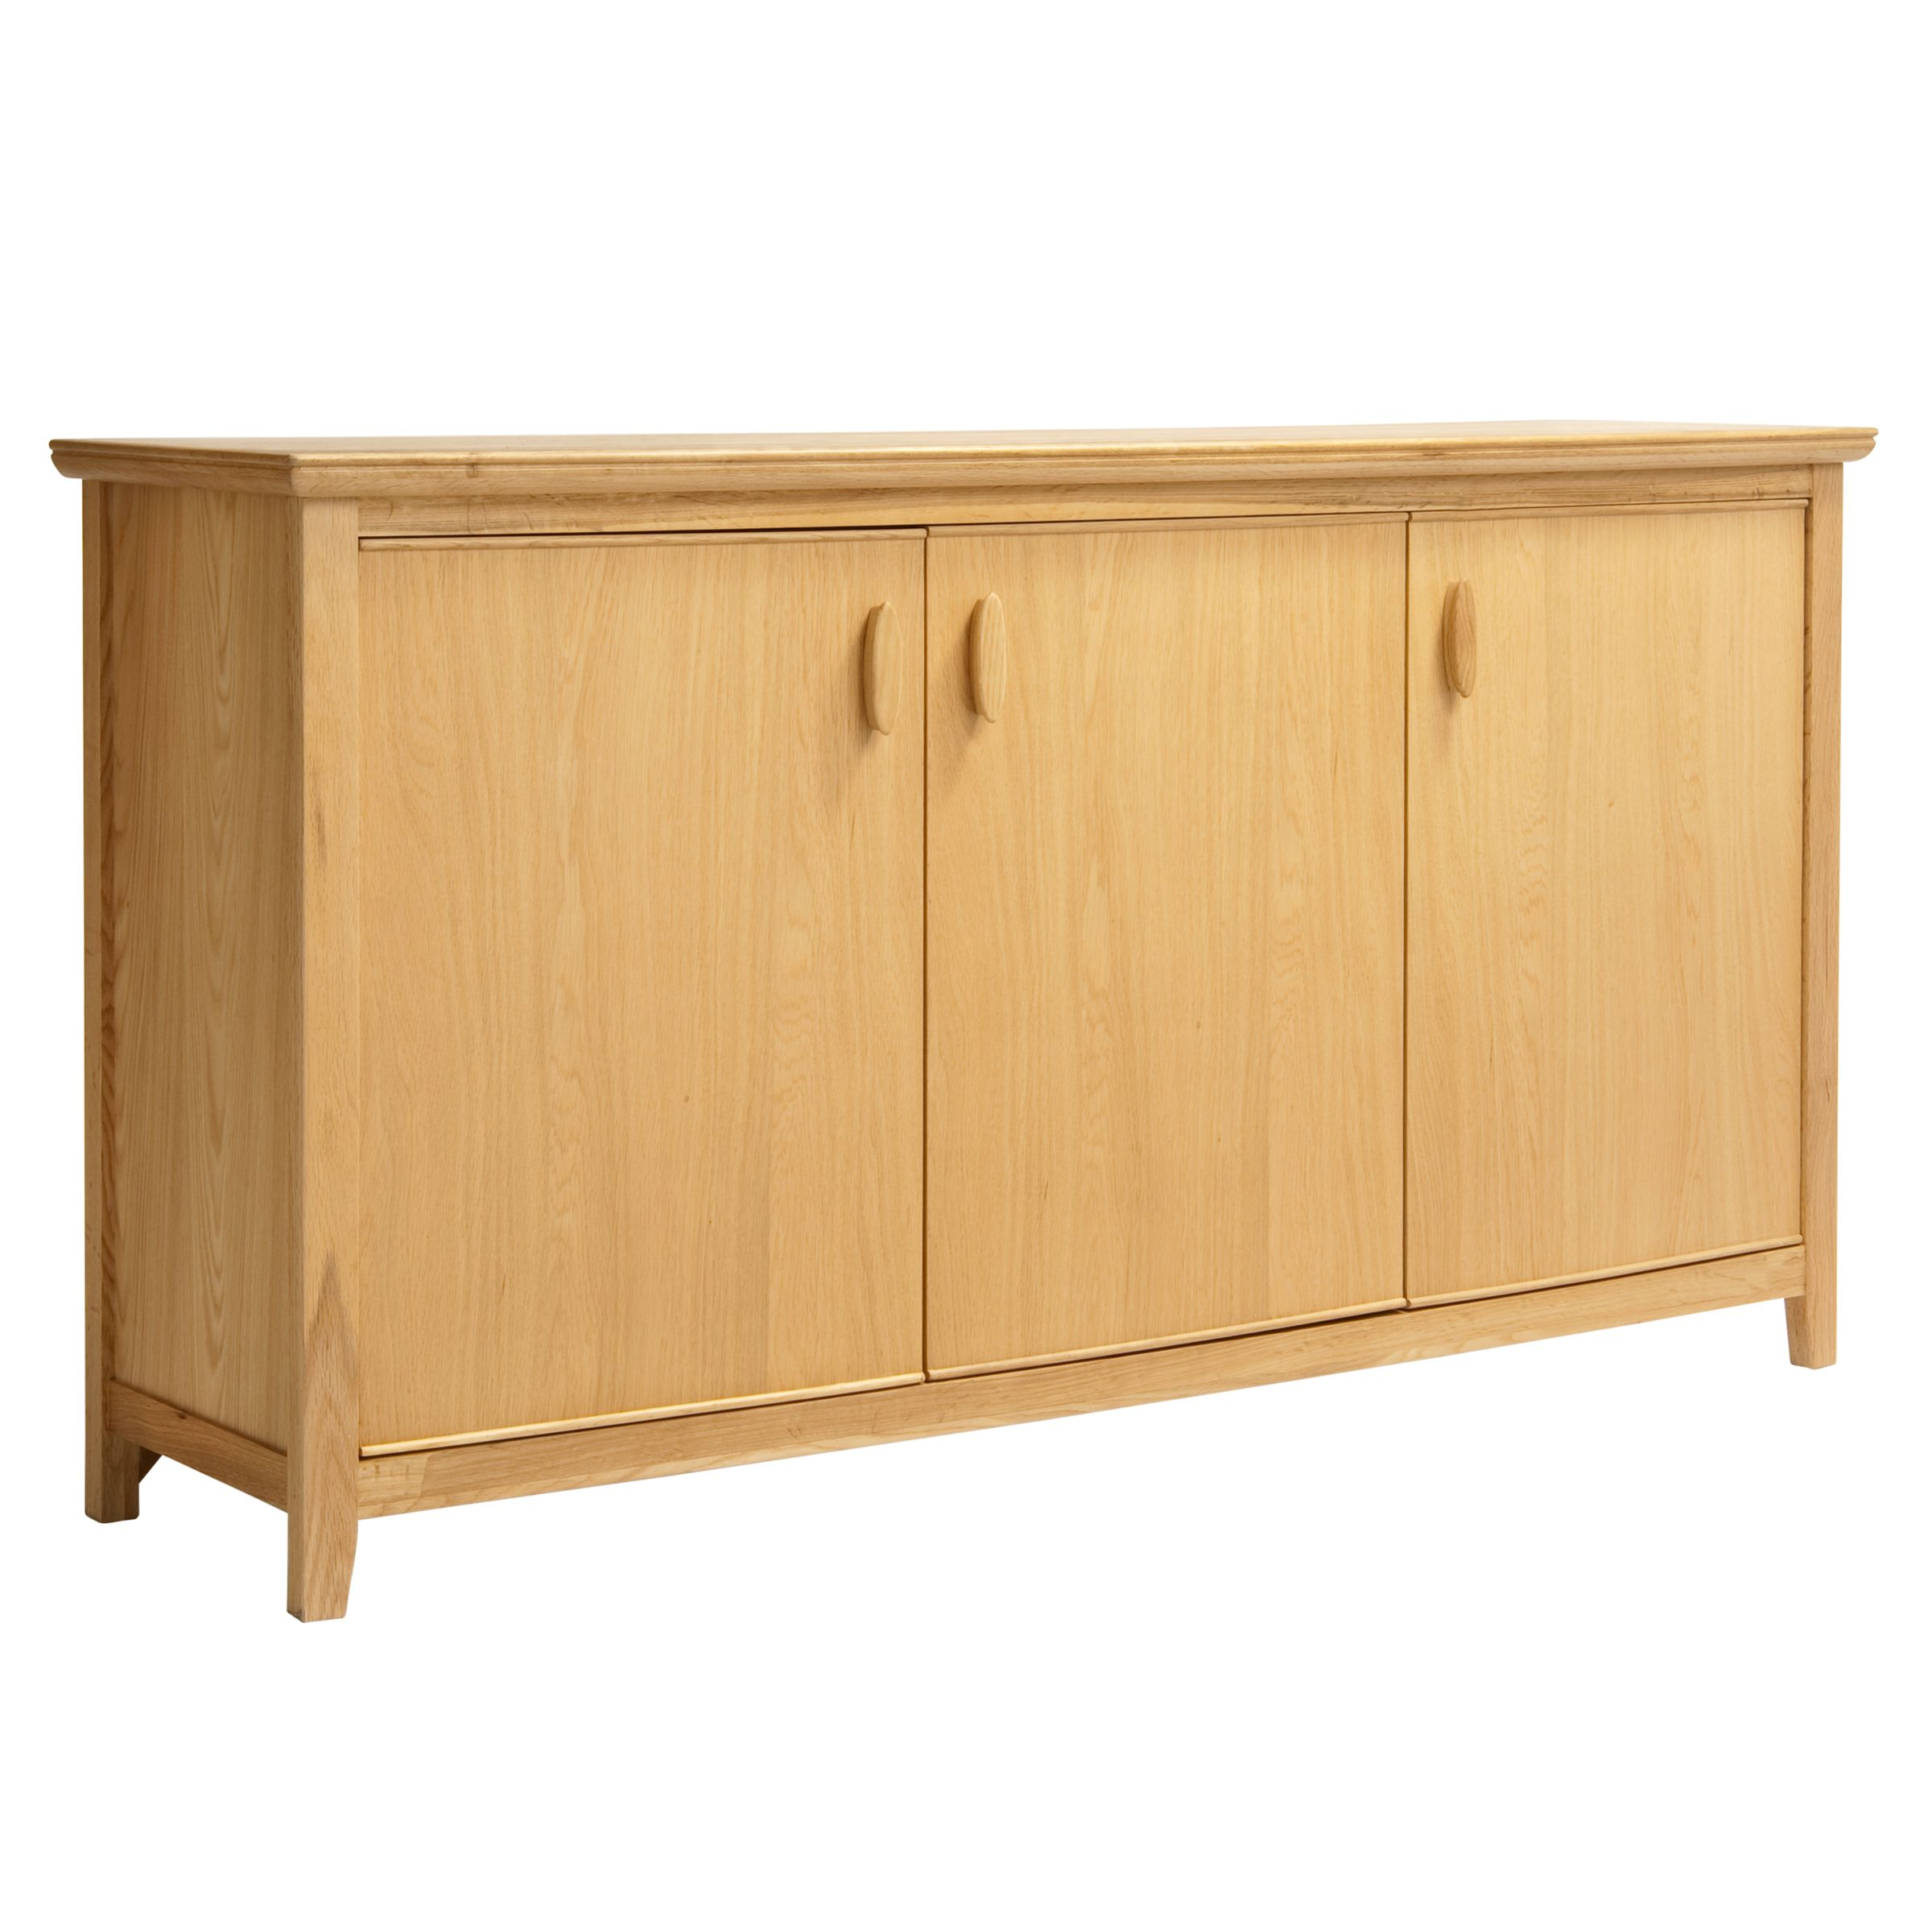 Avenue 3 Door Sideboard with Cutlery